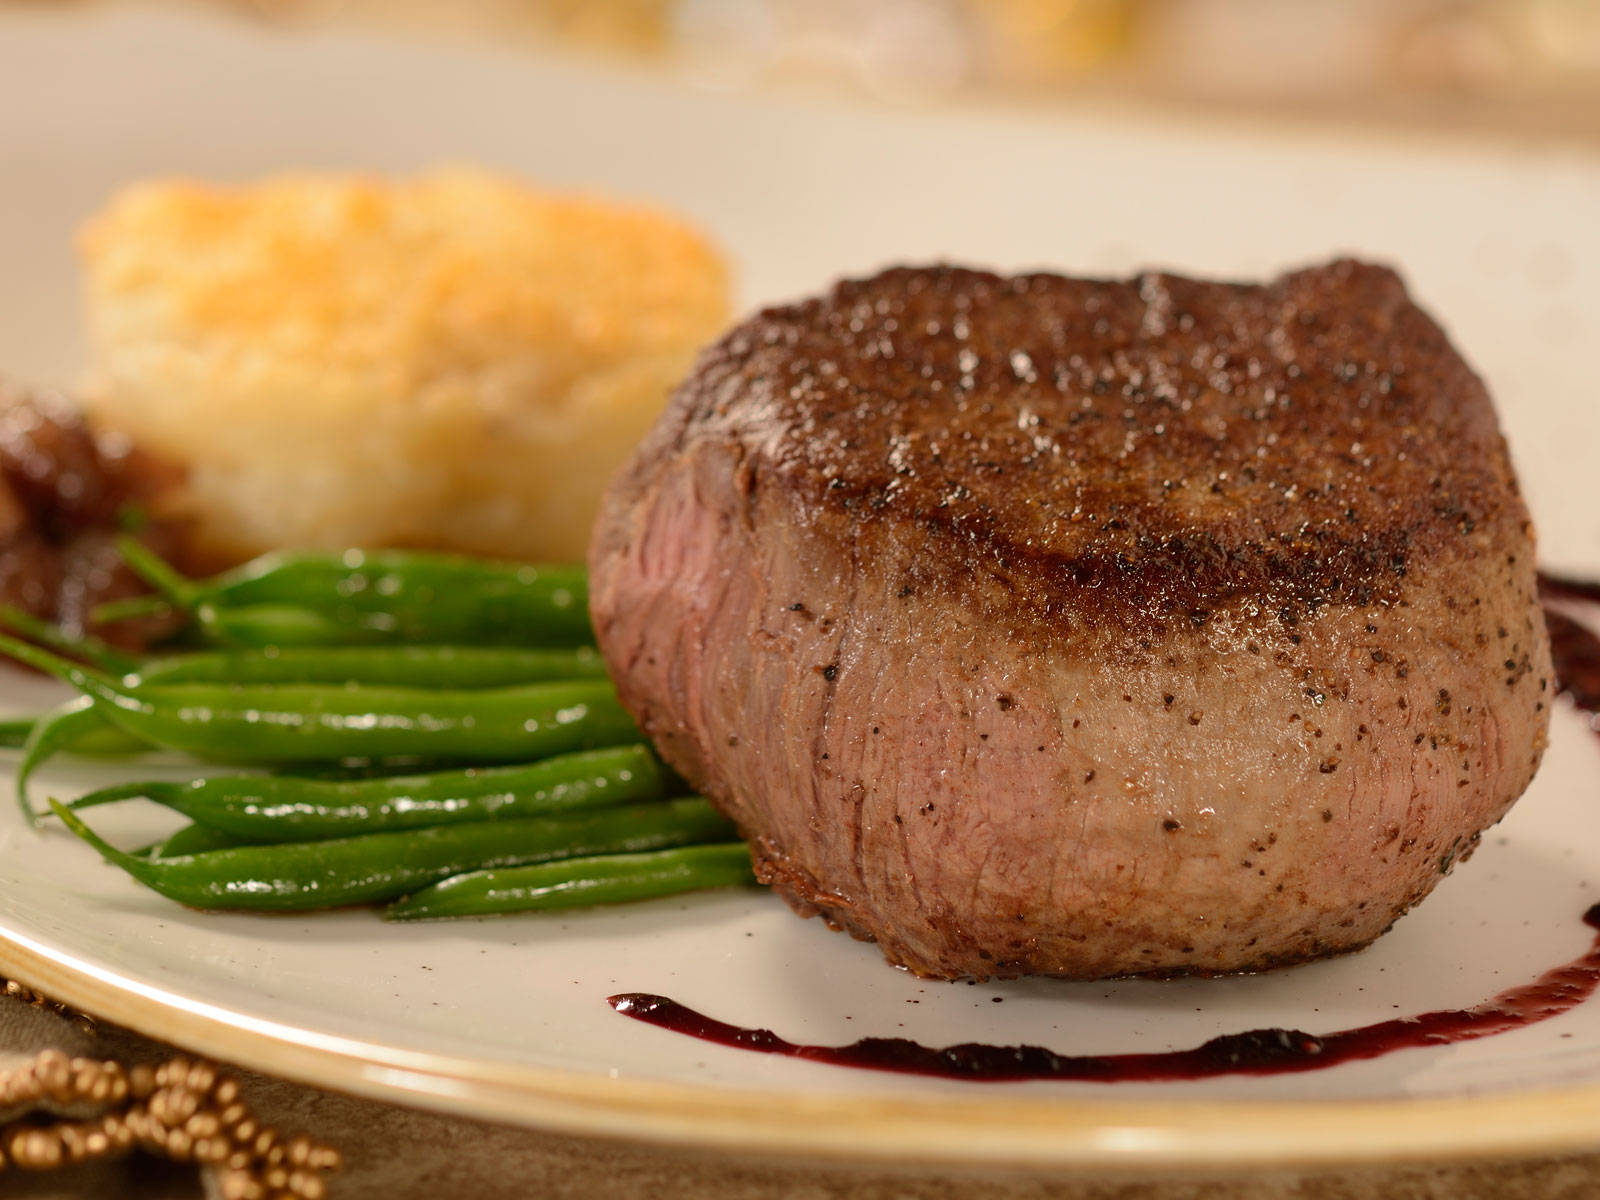 Disney World's 'Beauty and the Beast'-Themed Restaurant Menu Gets a Makeover This Summer disneyworld-be-our-guest-filet-mignon-FT-BLOG0218